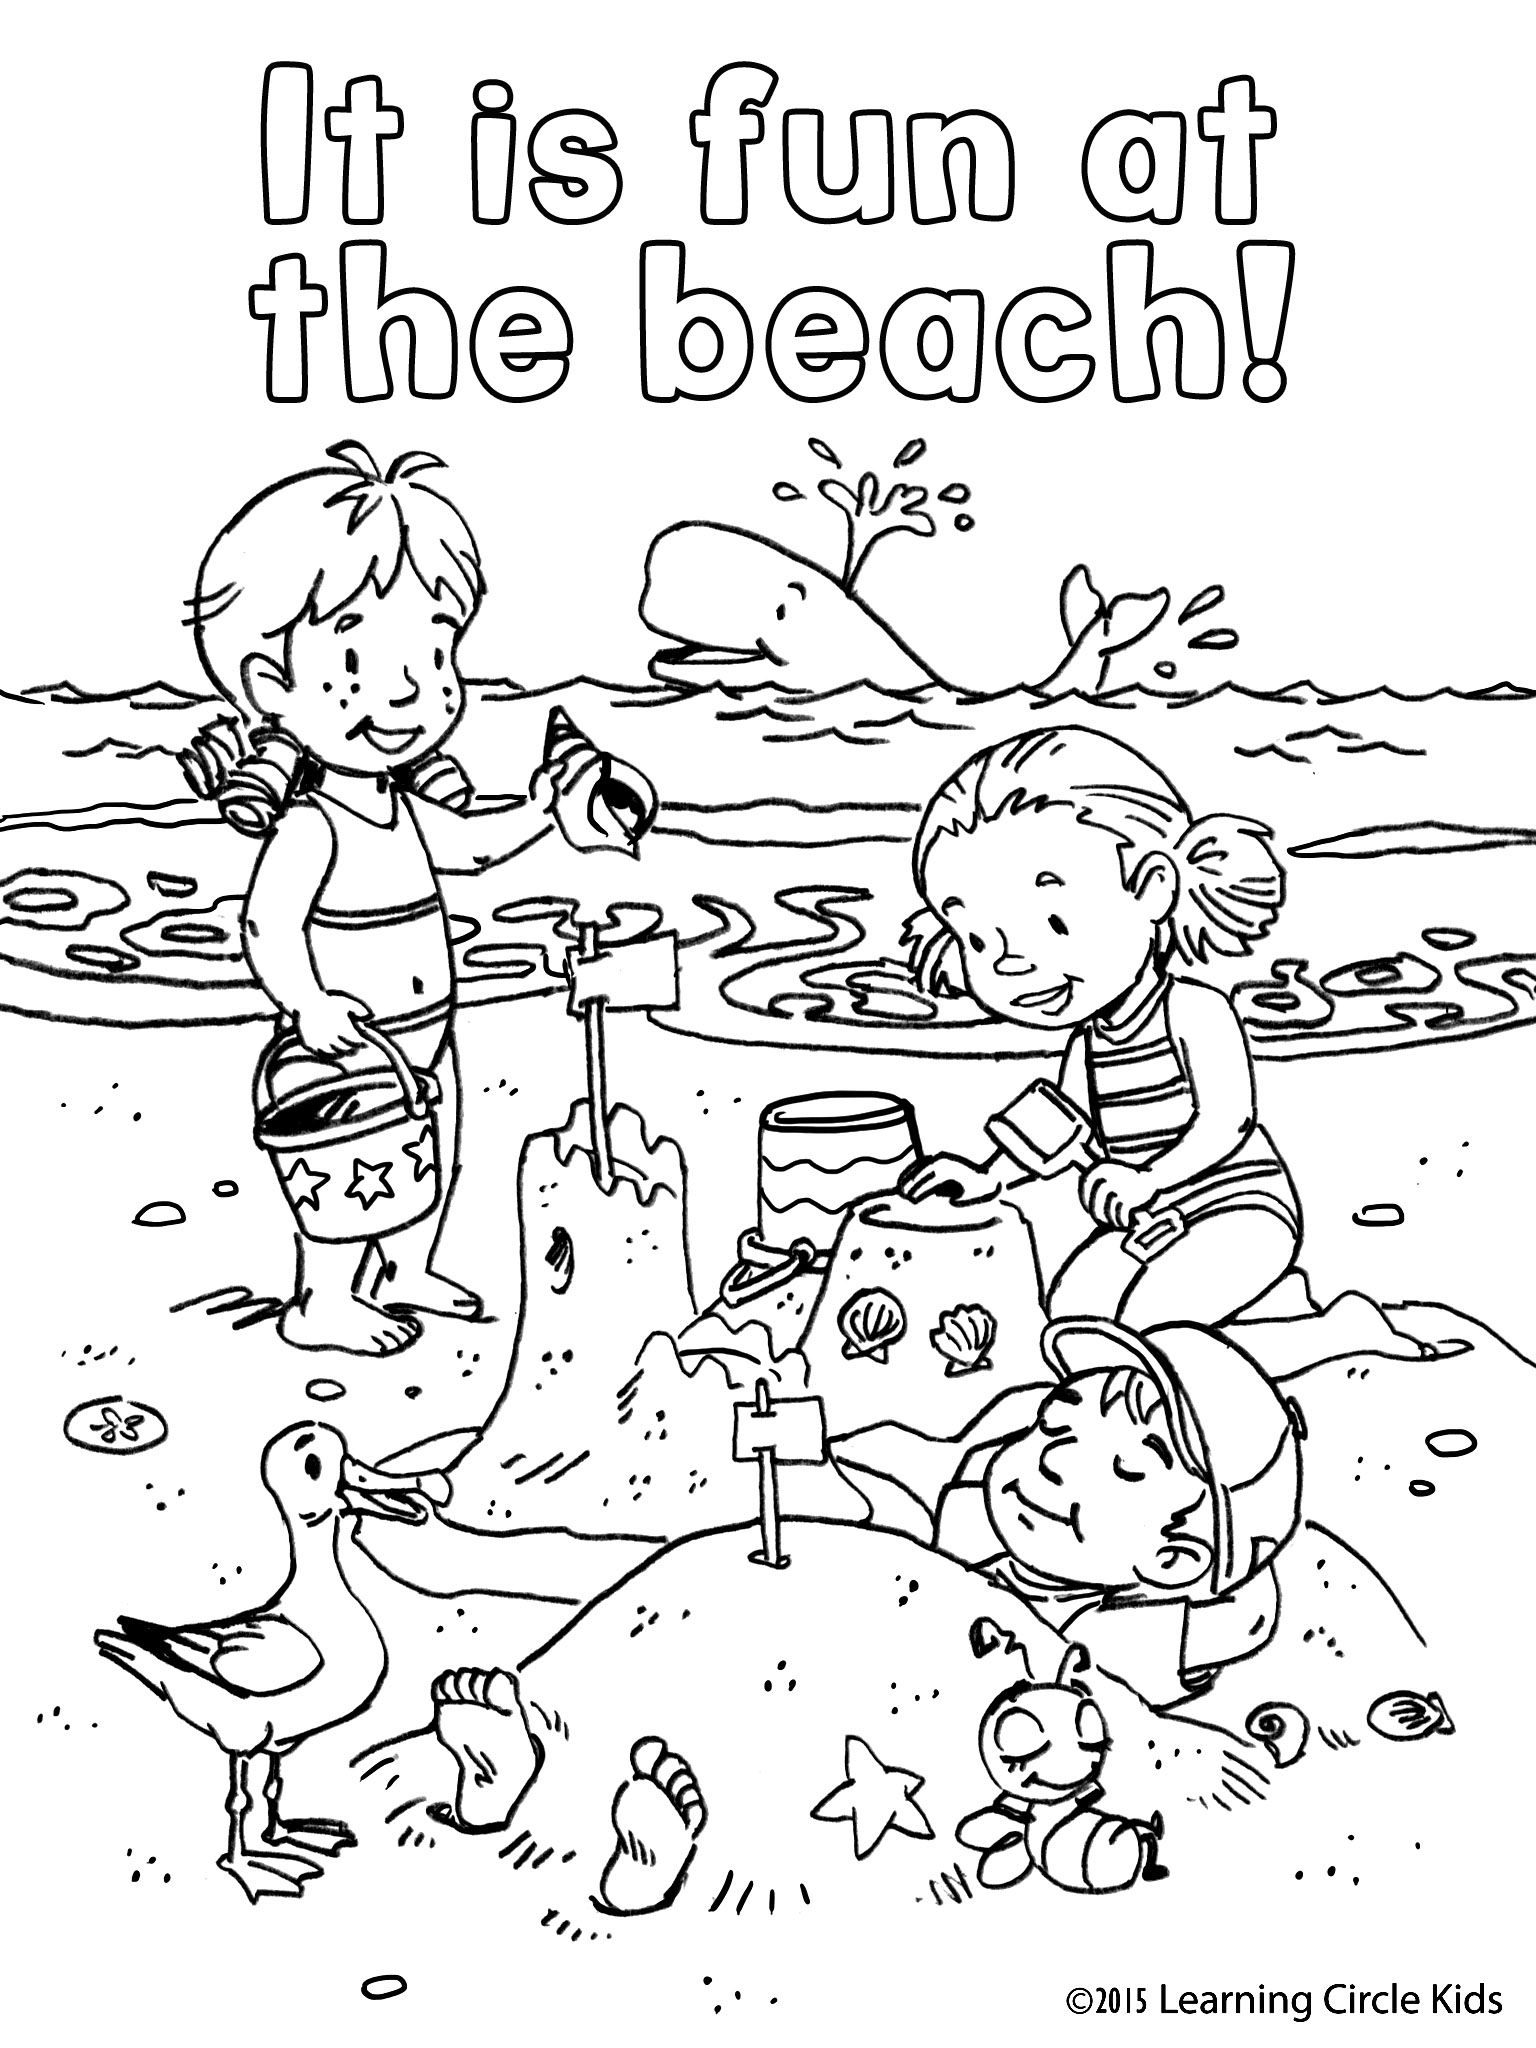 Free coloring page. Children\'s summer fun at the beach with Reader ...